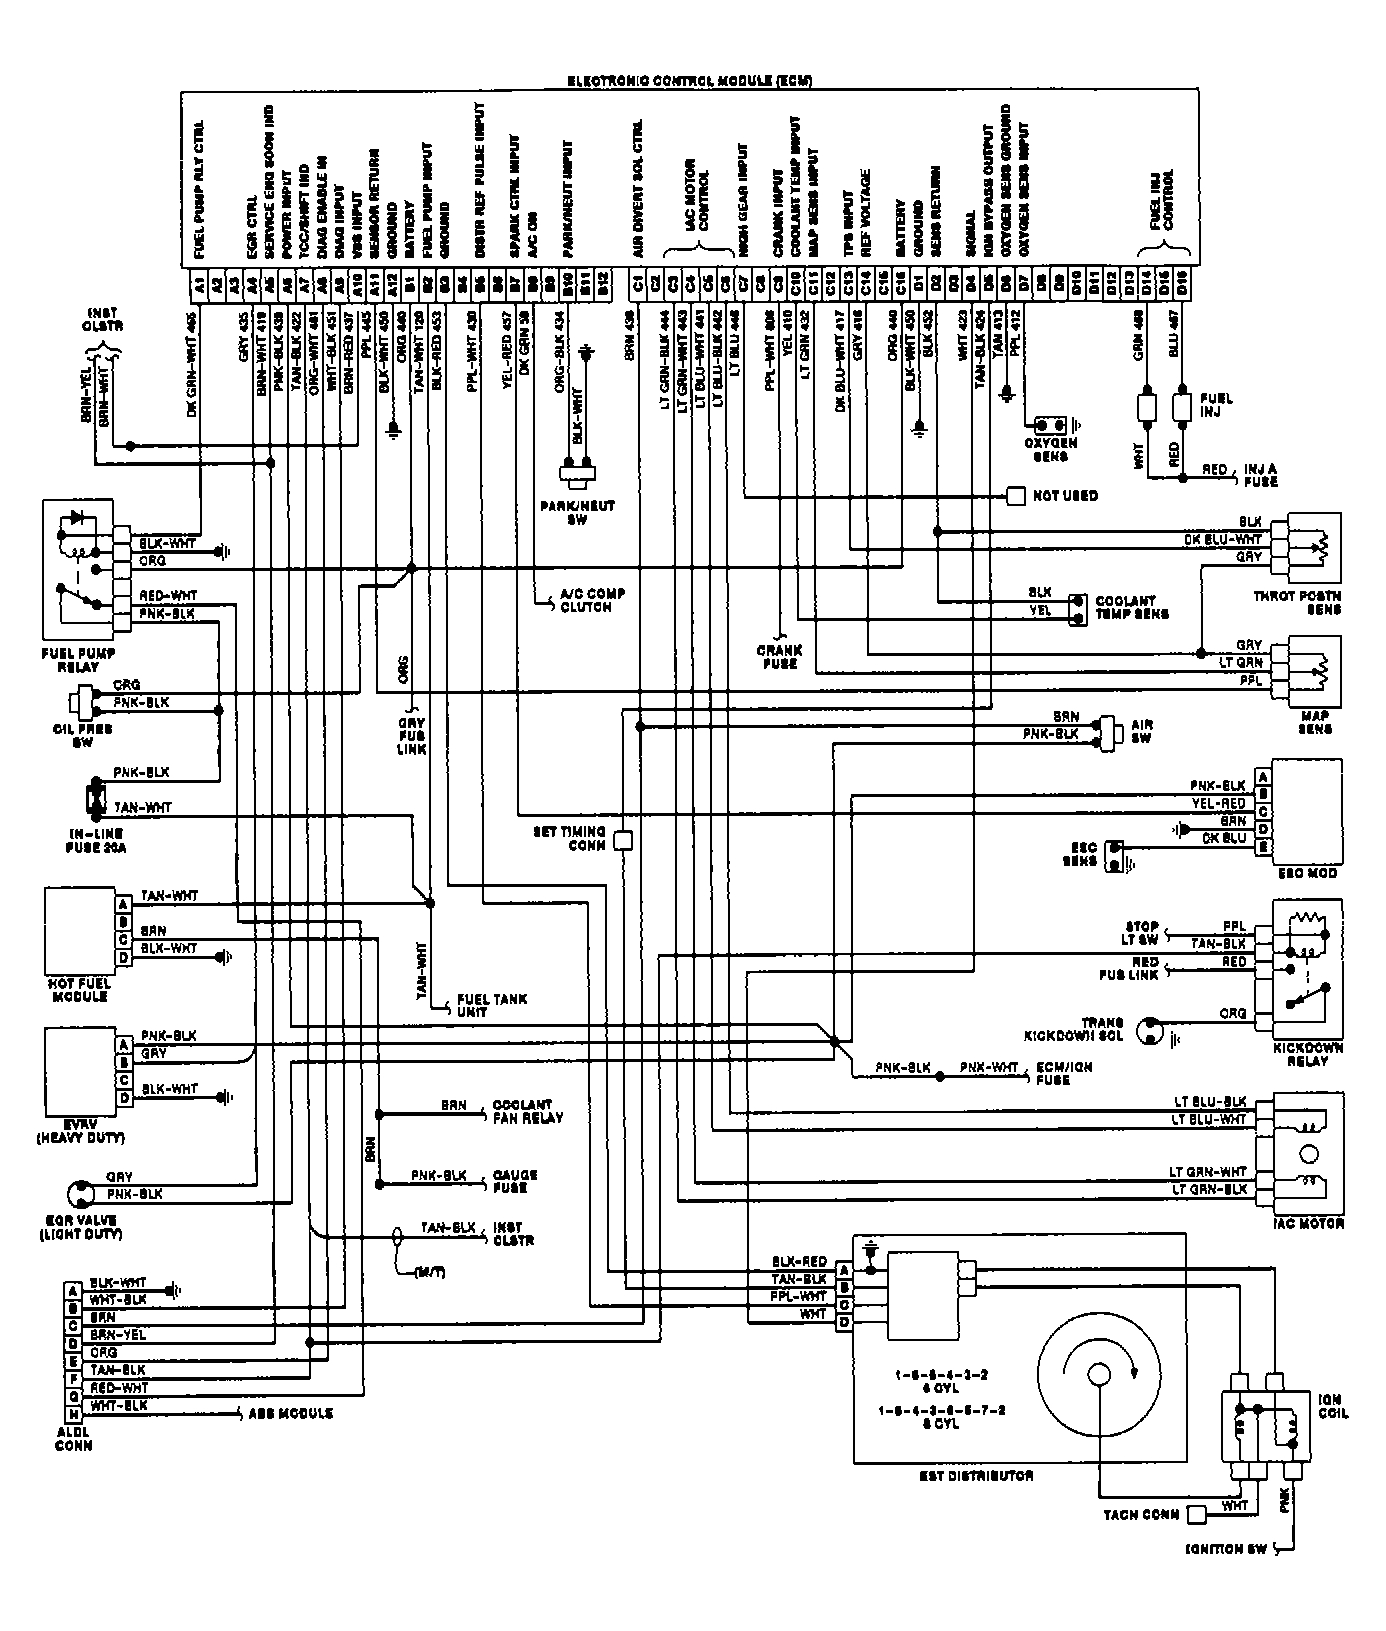 chevy k1500 wiring diagram wiring diagram databasei need a wiring schematic for a chevy c k